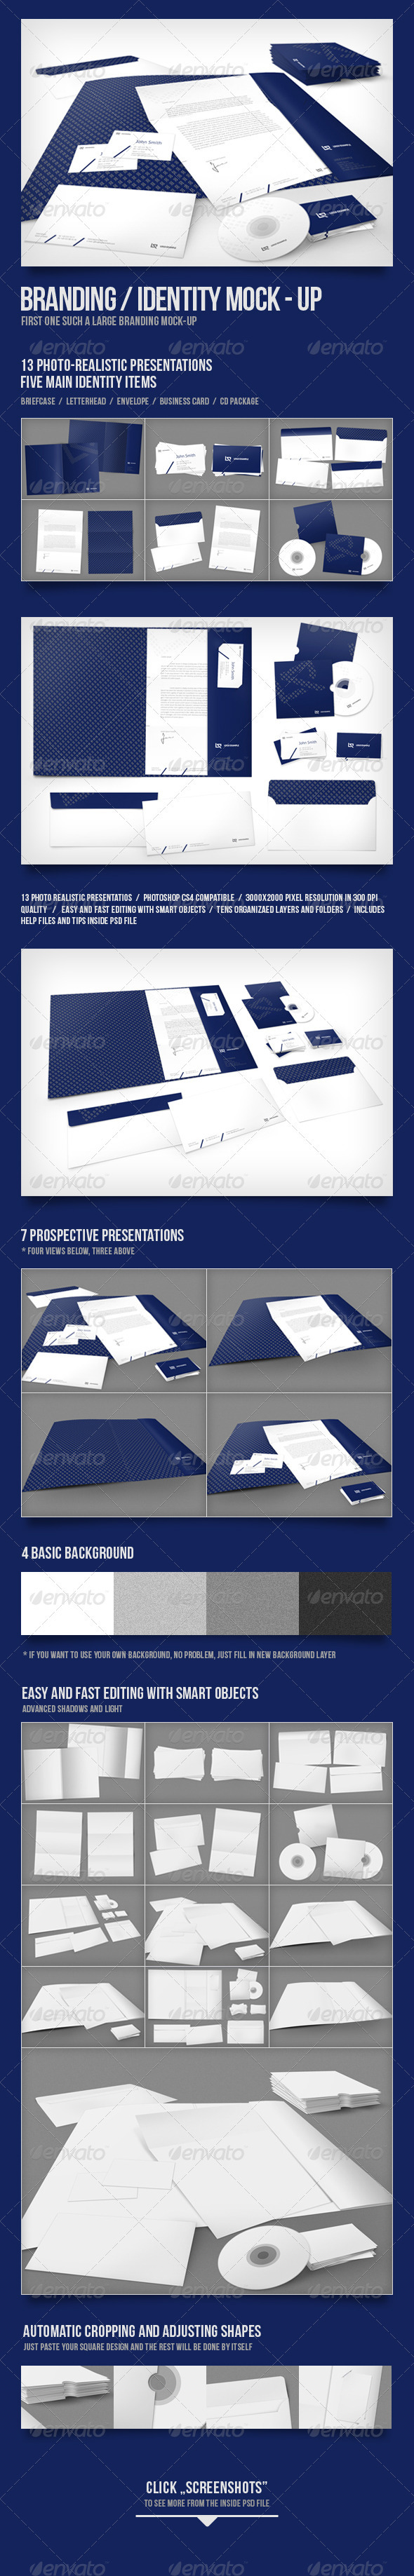 Branding/Identity Mock-up - Stationery Print